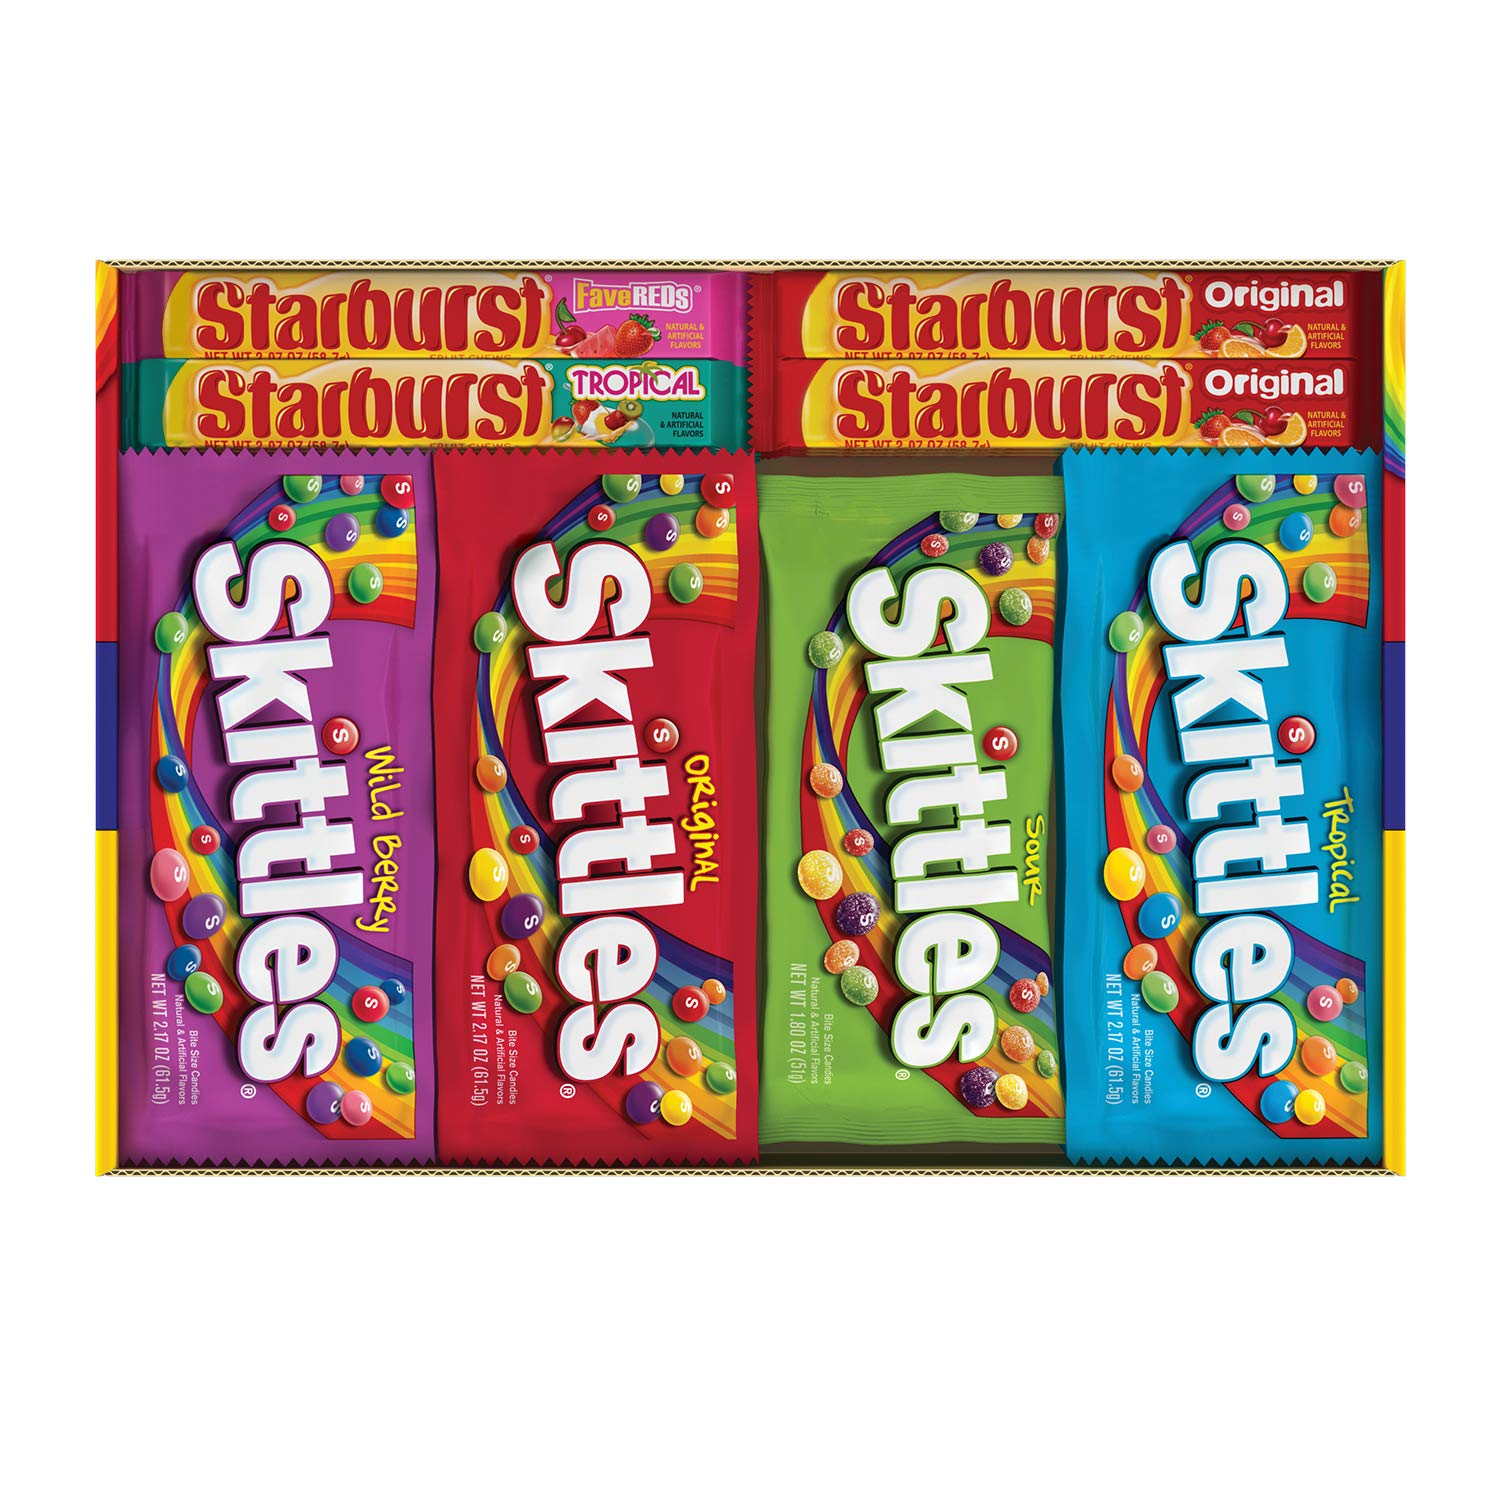 Skittles & Starburst Halloween Candy Full Size Variety Mix 30Count Box by Starburst